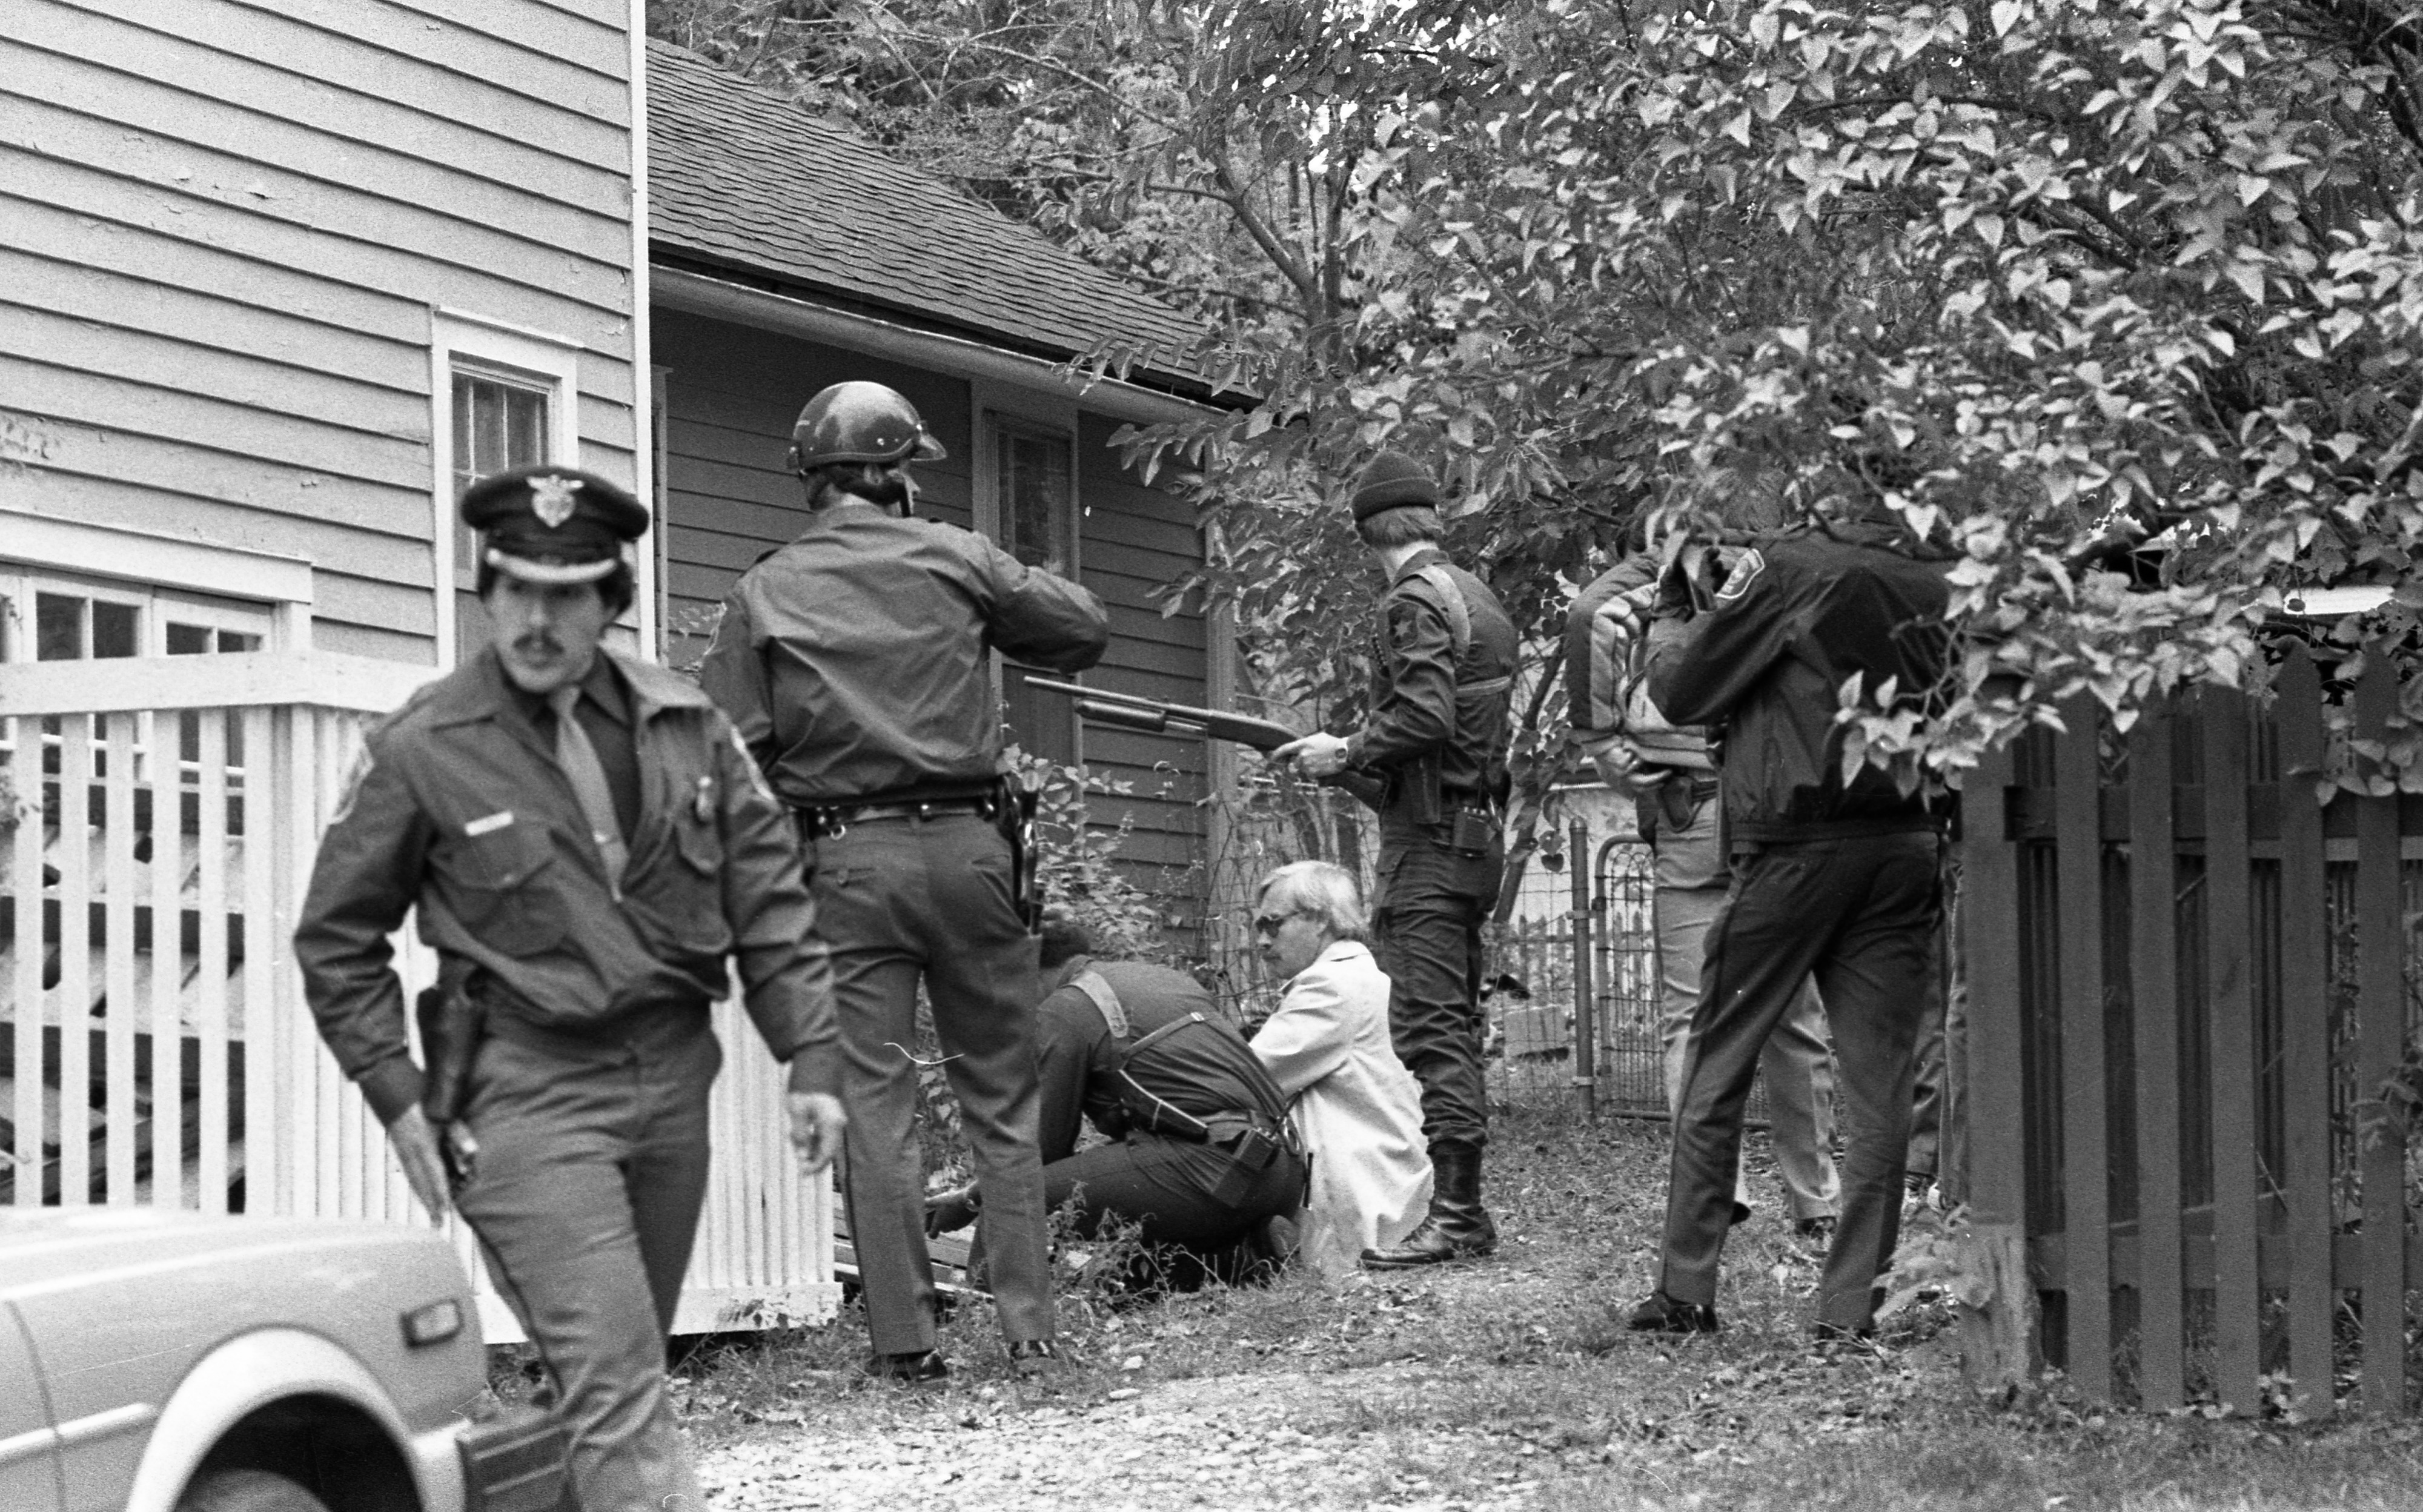 Ann Arbor Police Search Homes On Felch Street for Escaped Murderer Kyle Johnson, October 1982 image